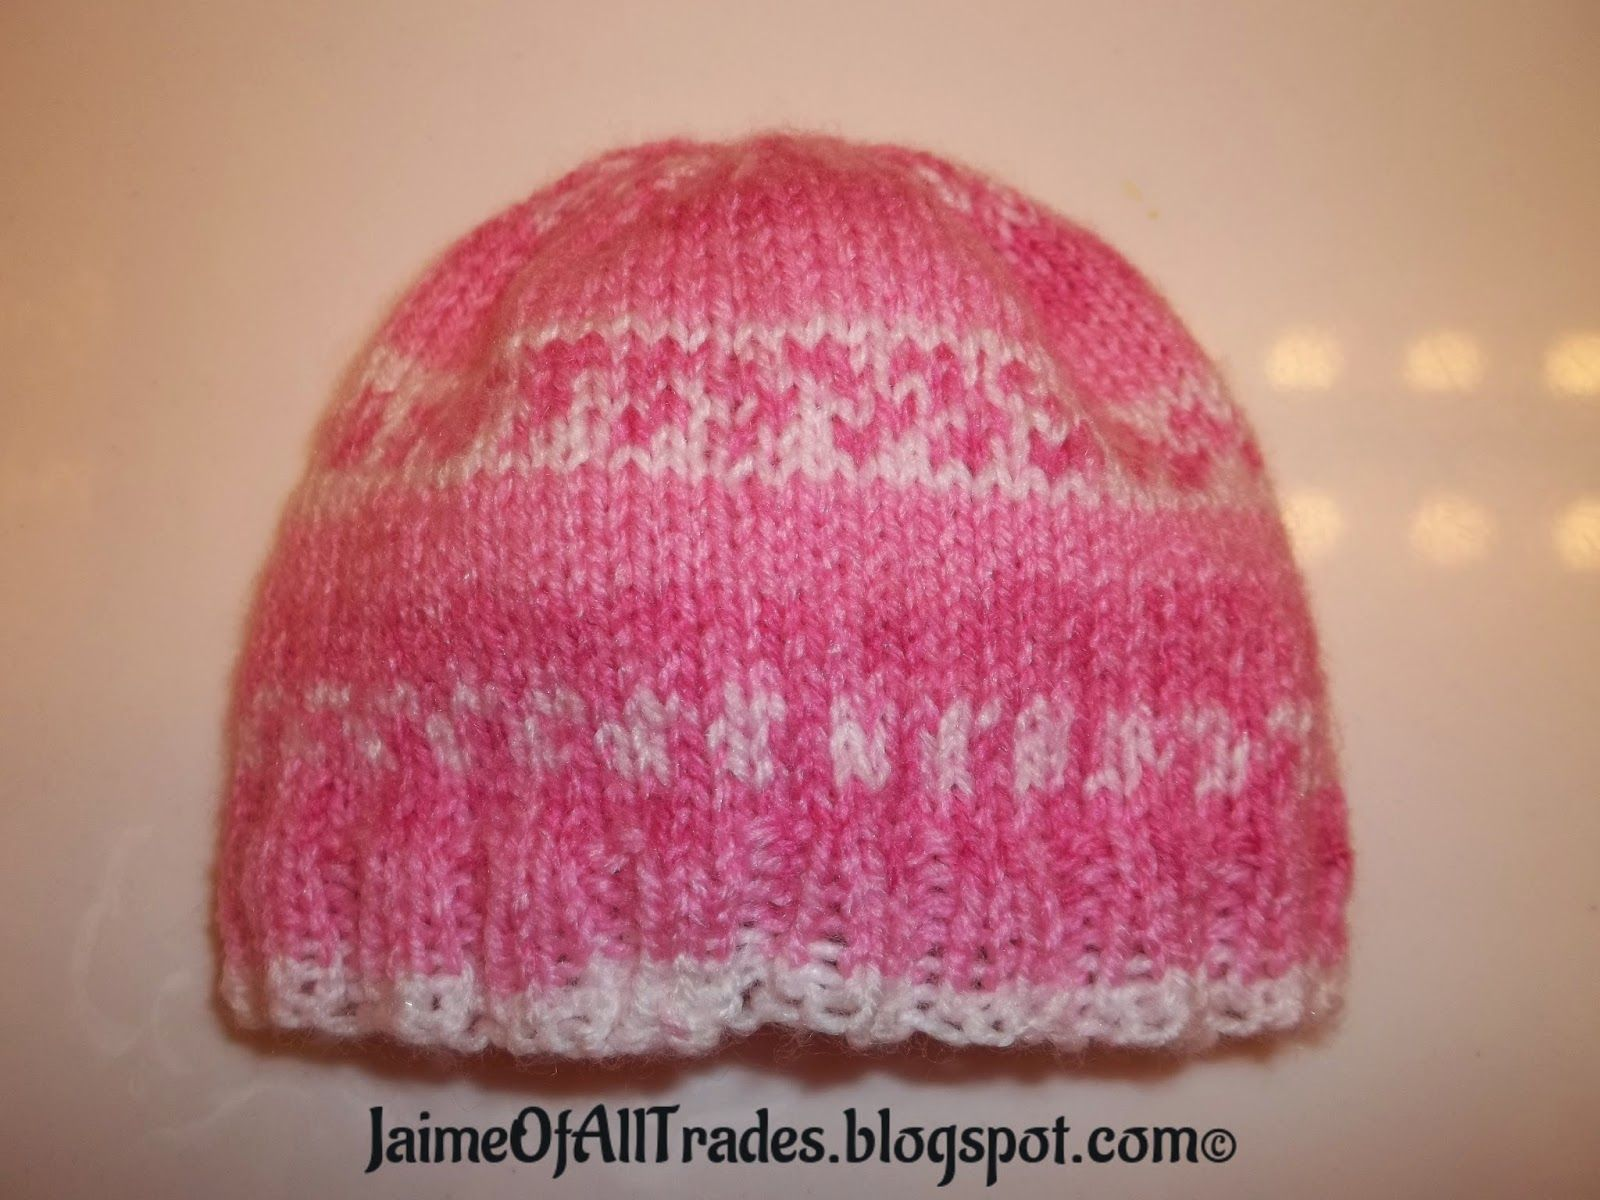 Jaime of All Trades: Knitting Newborn and Preemie Hats for Charity